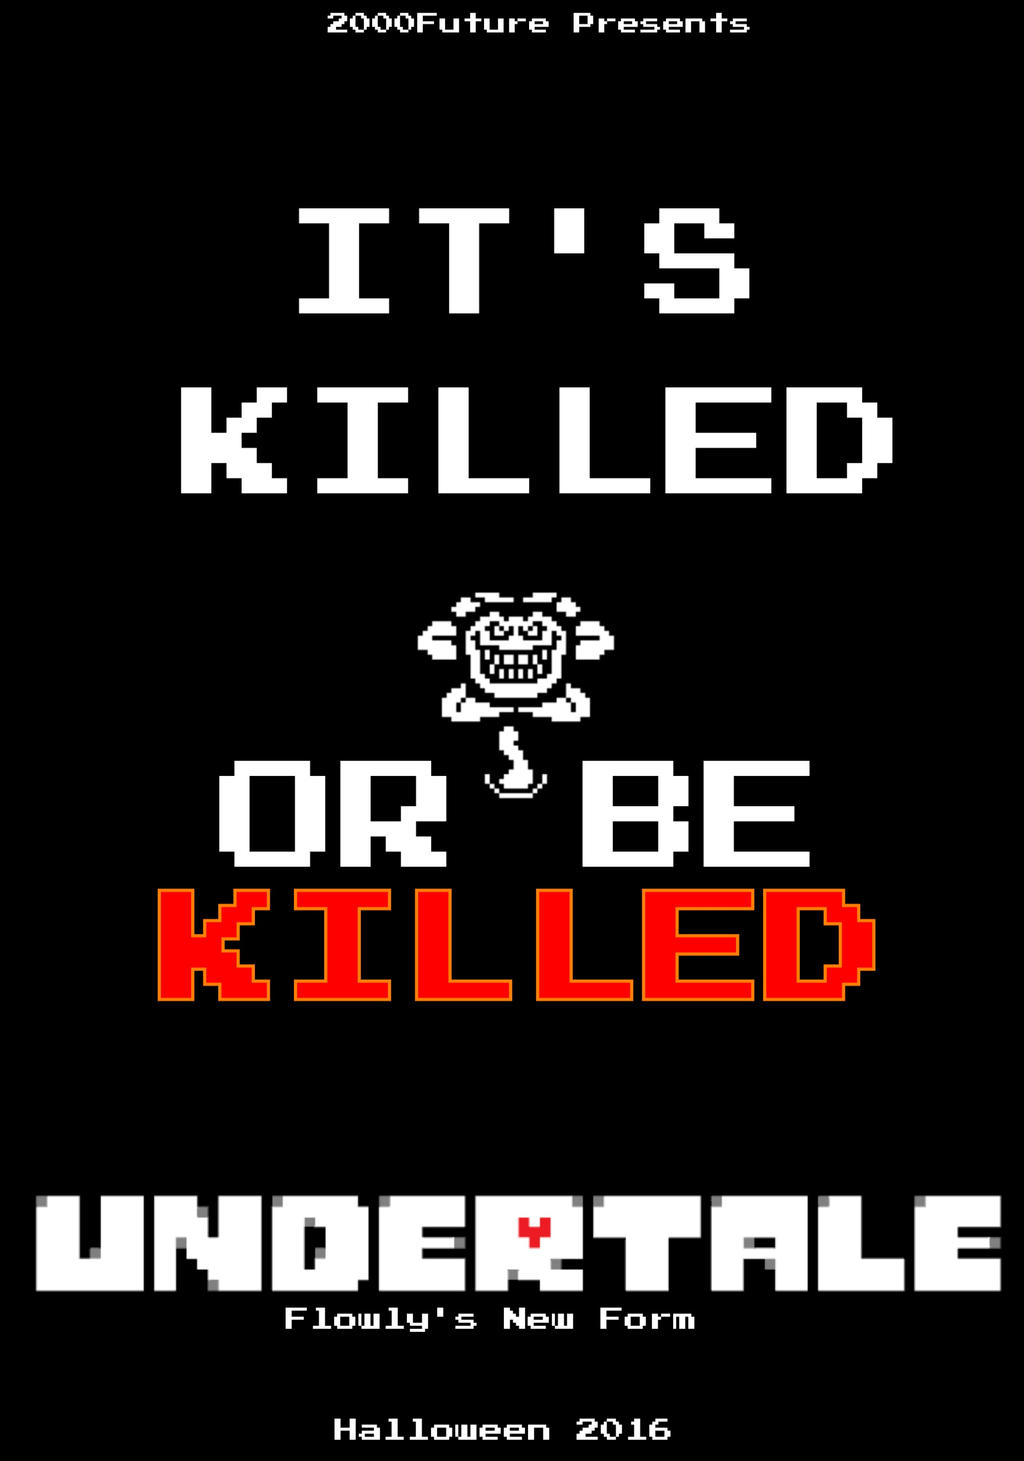 Undertale Flowly New Form Poster By Quote Template Ti Video